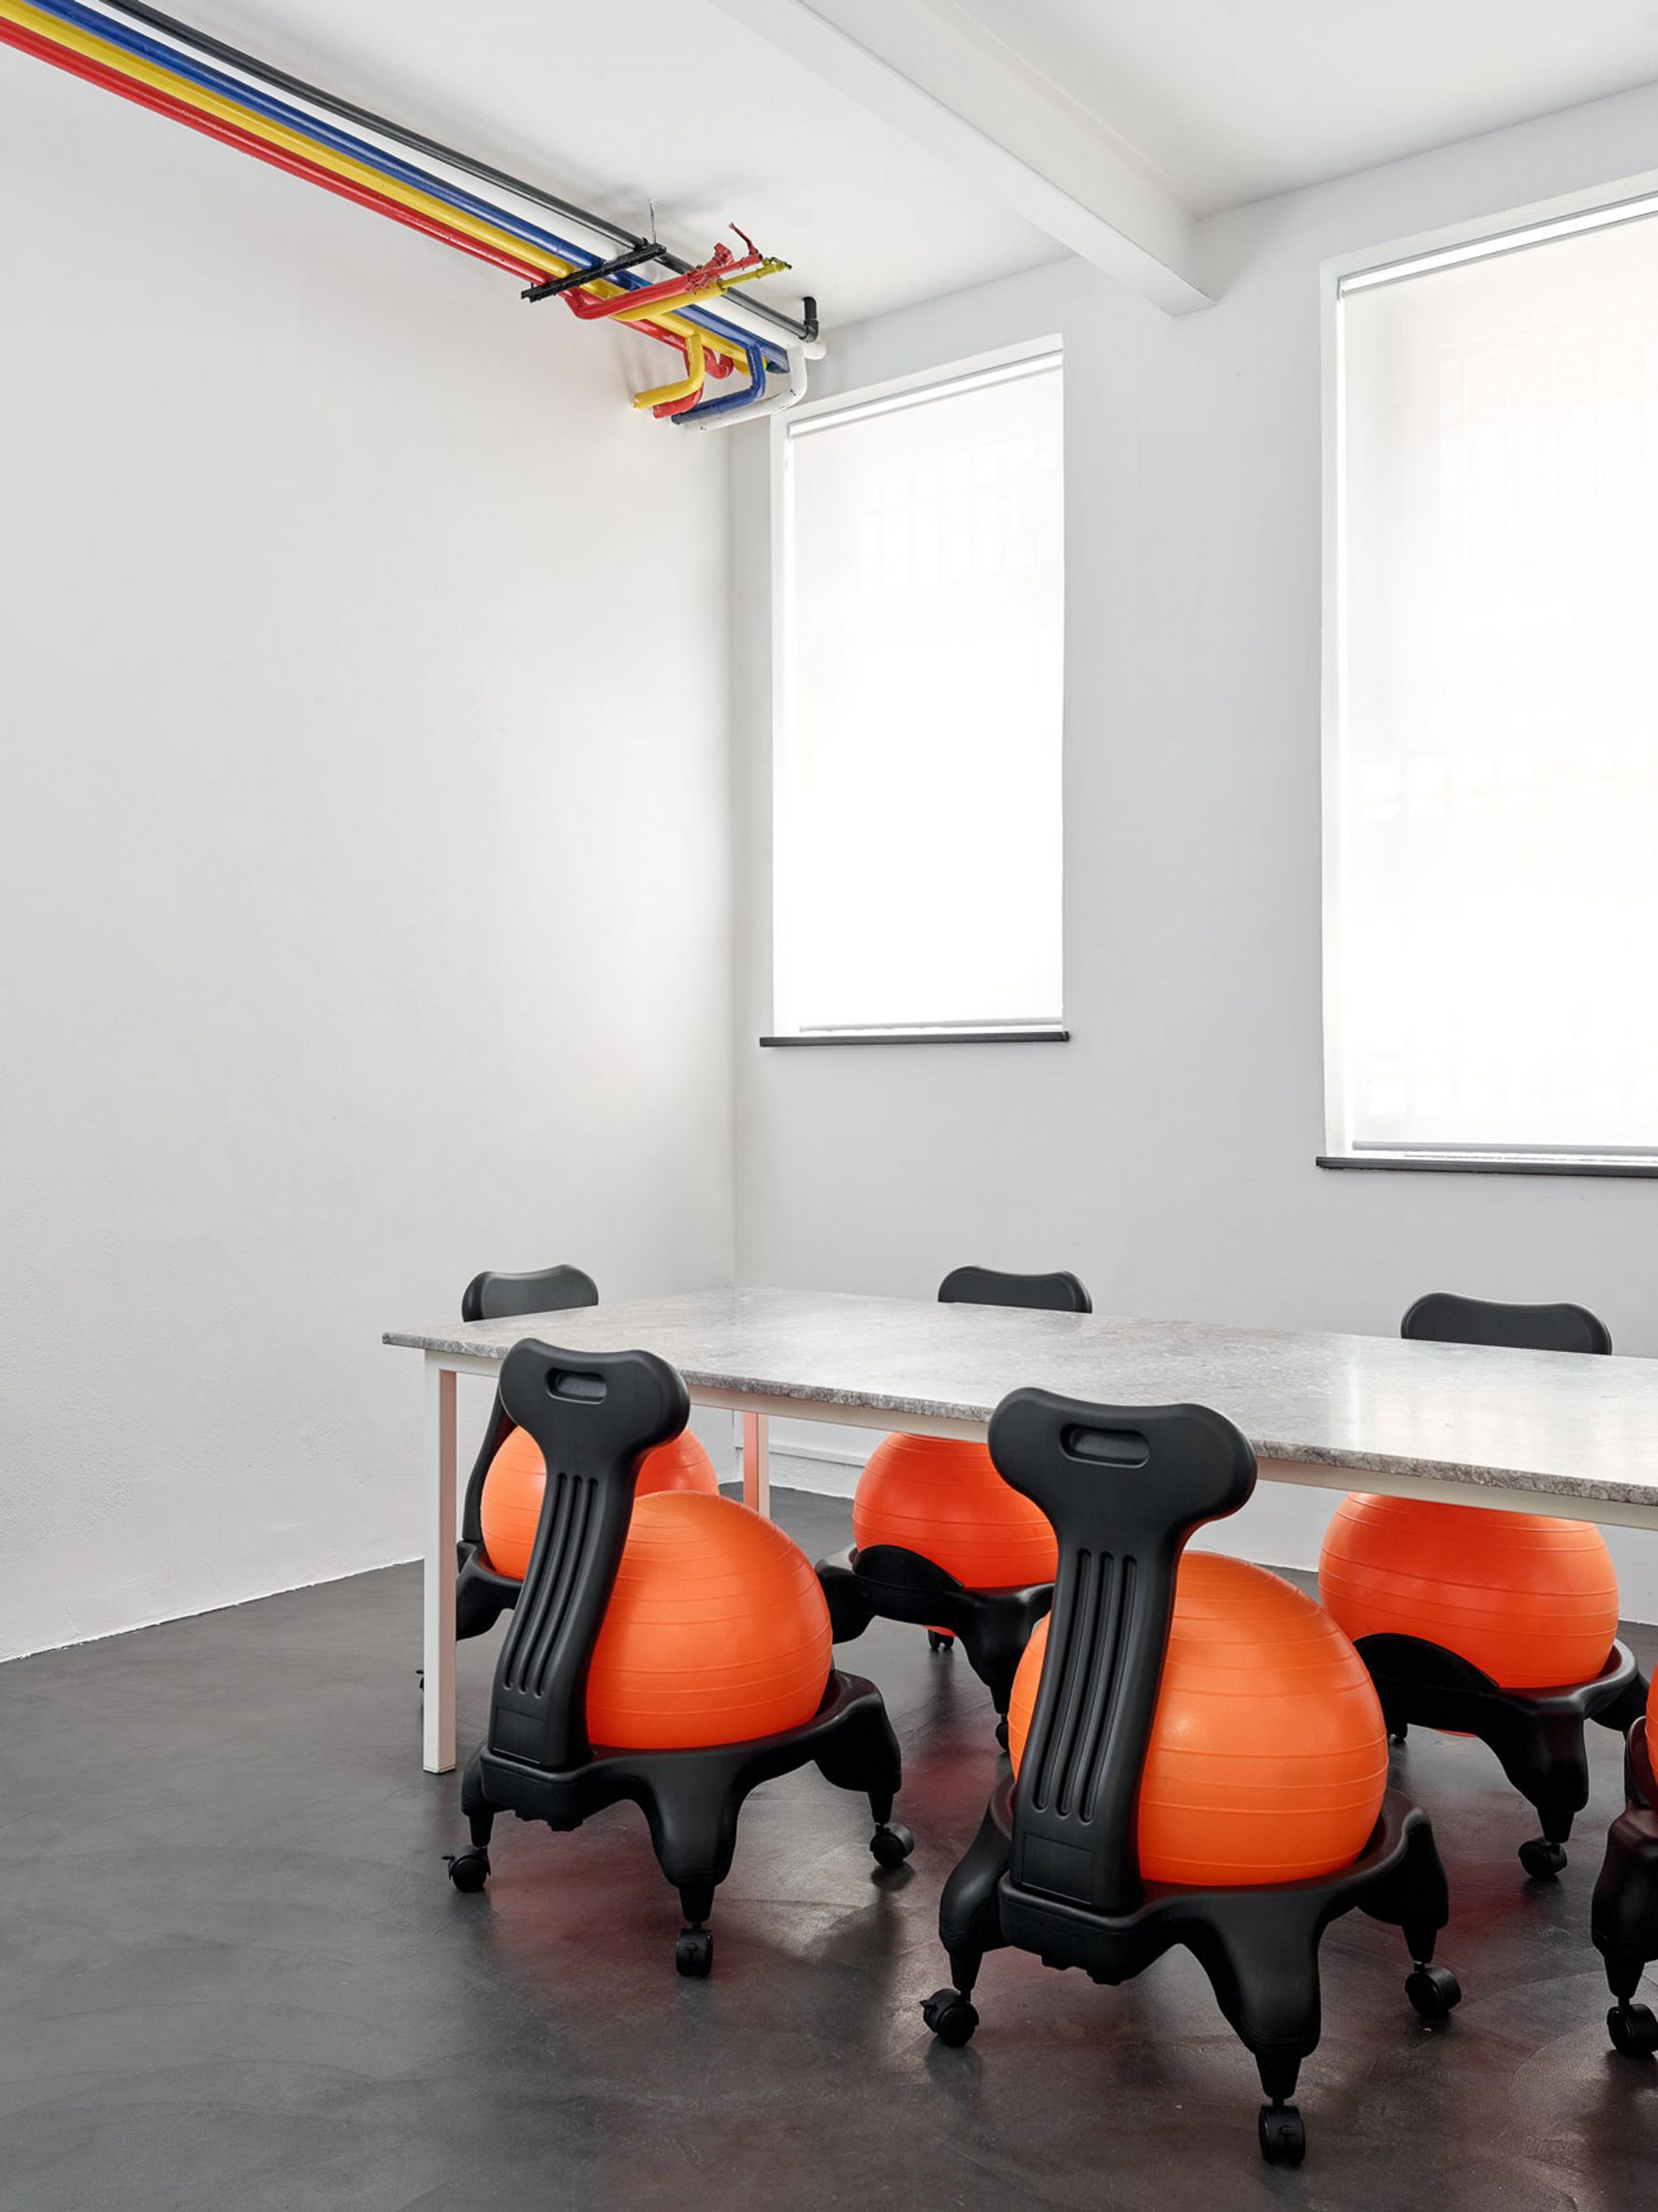 Chairs fitted with exercise balls were placed at a stone table